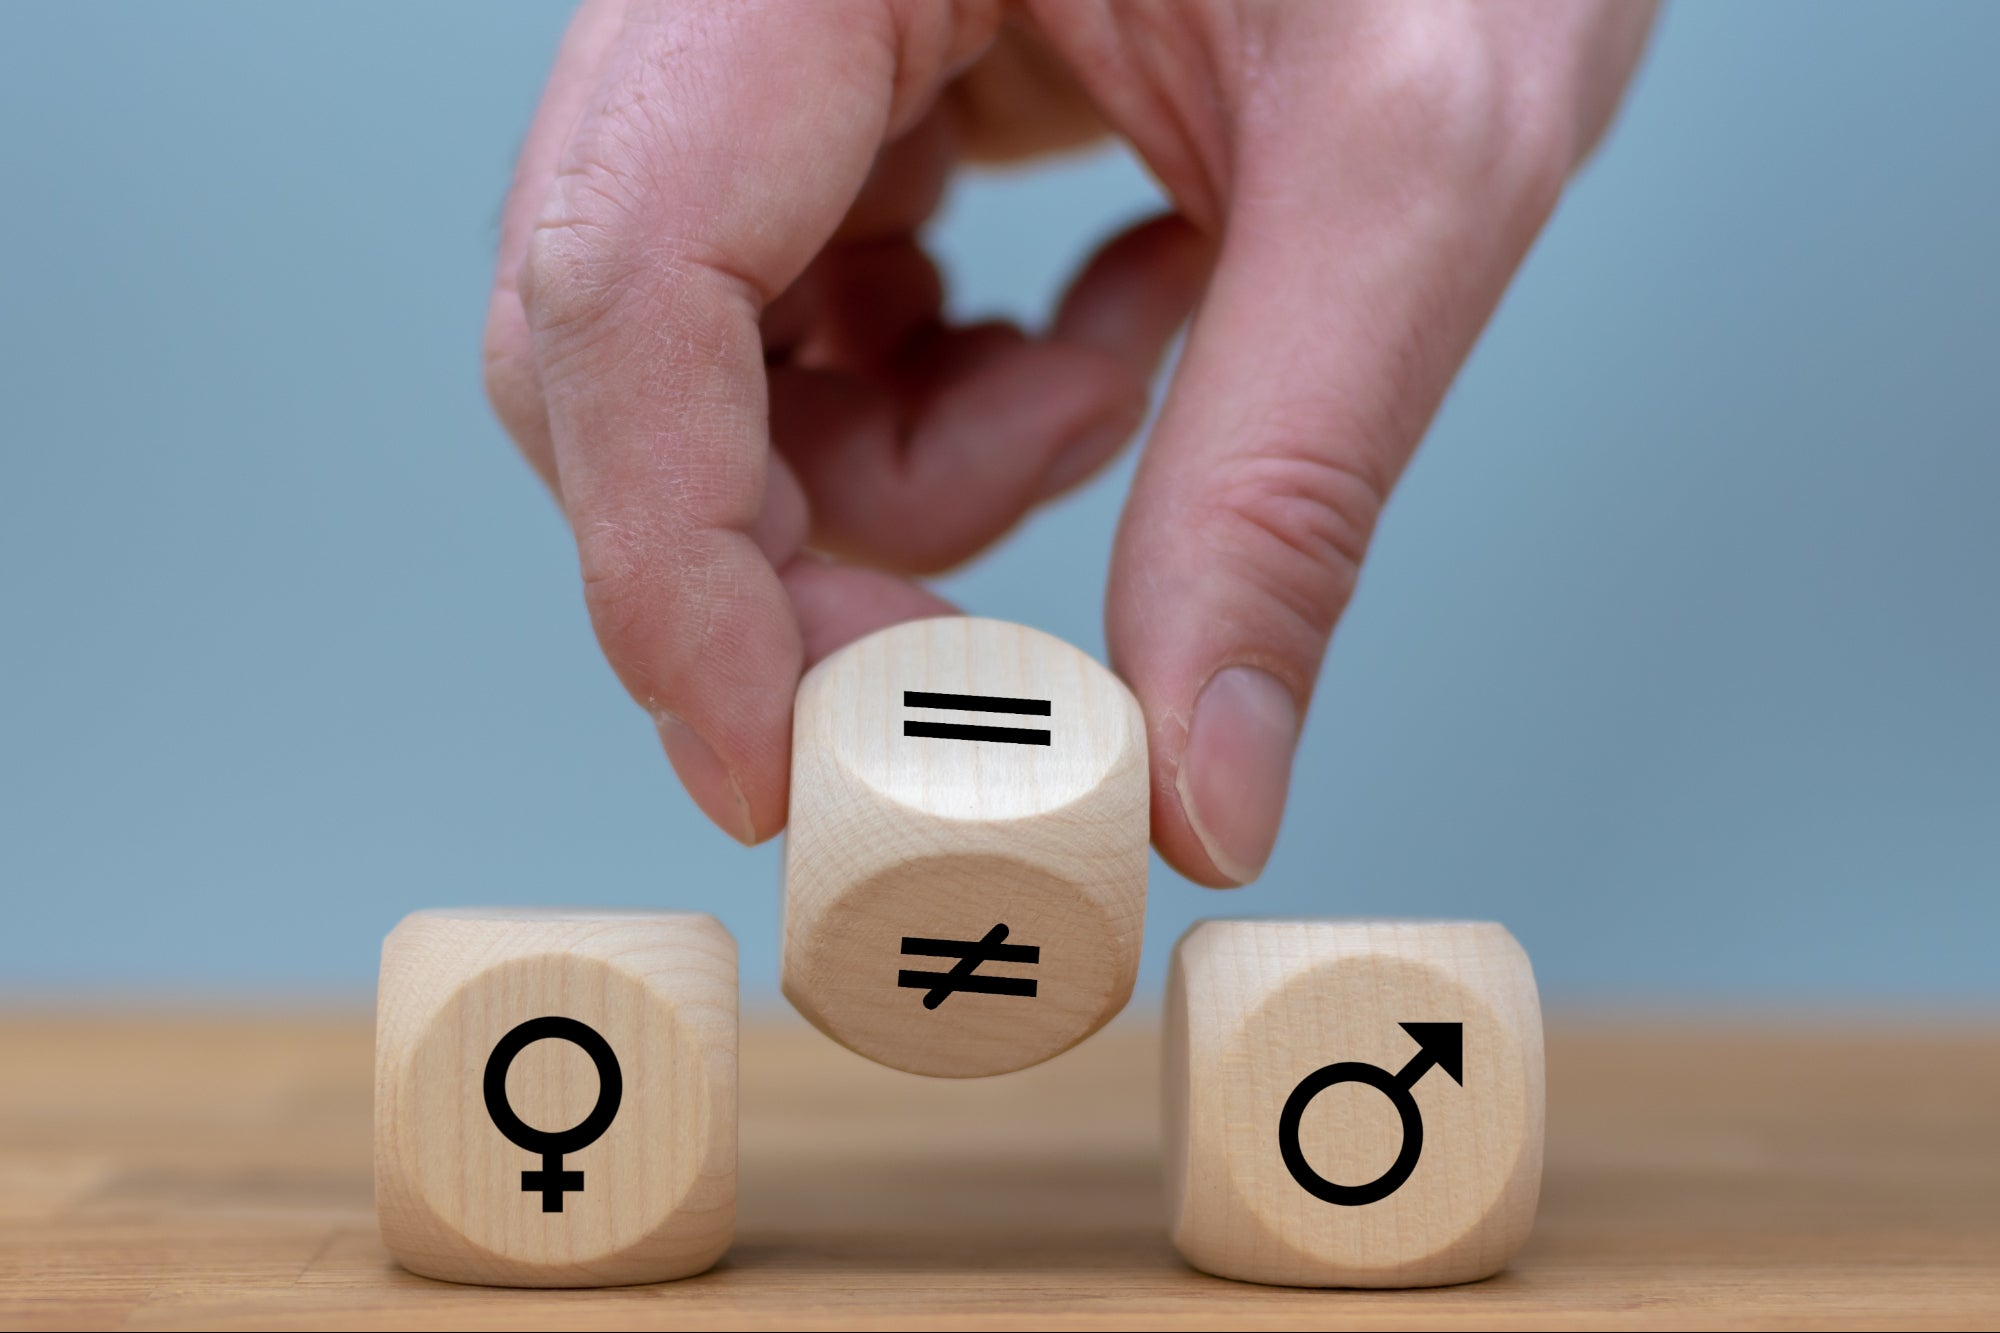 Time For A Reset: What The COVID-19 Crisis Might Mean For Gender Equality